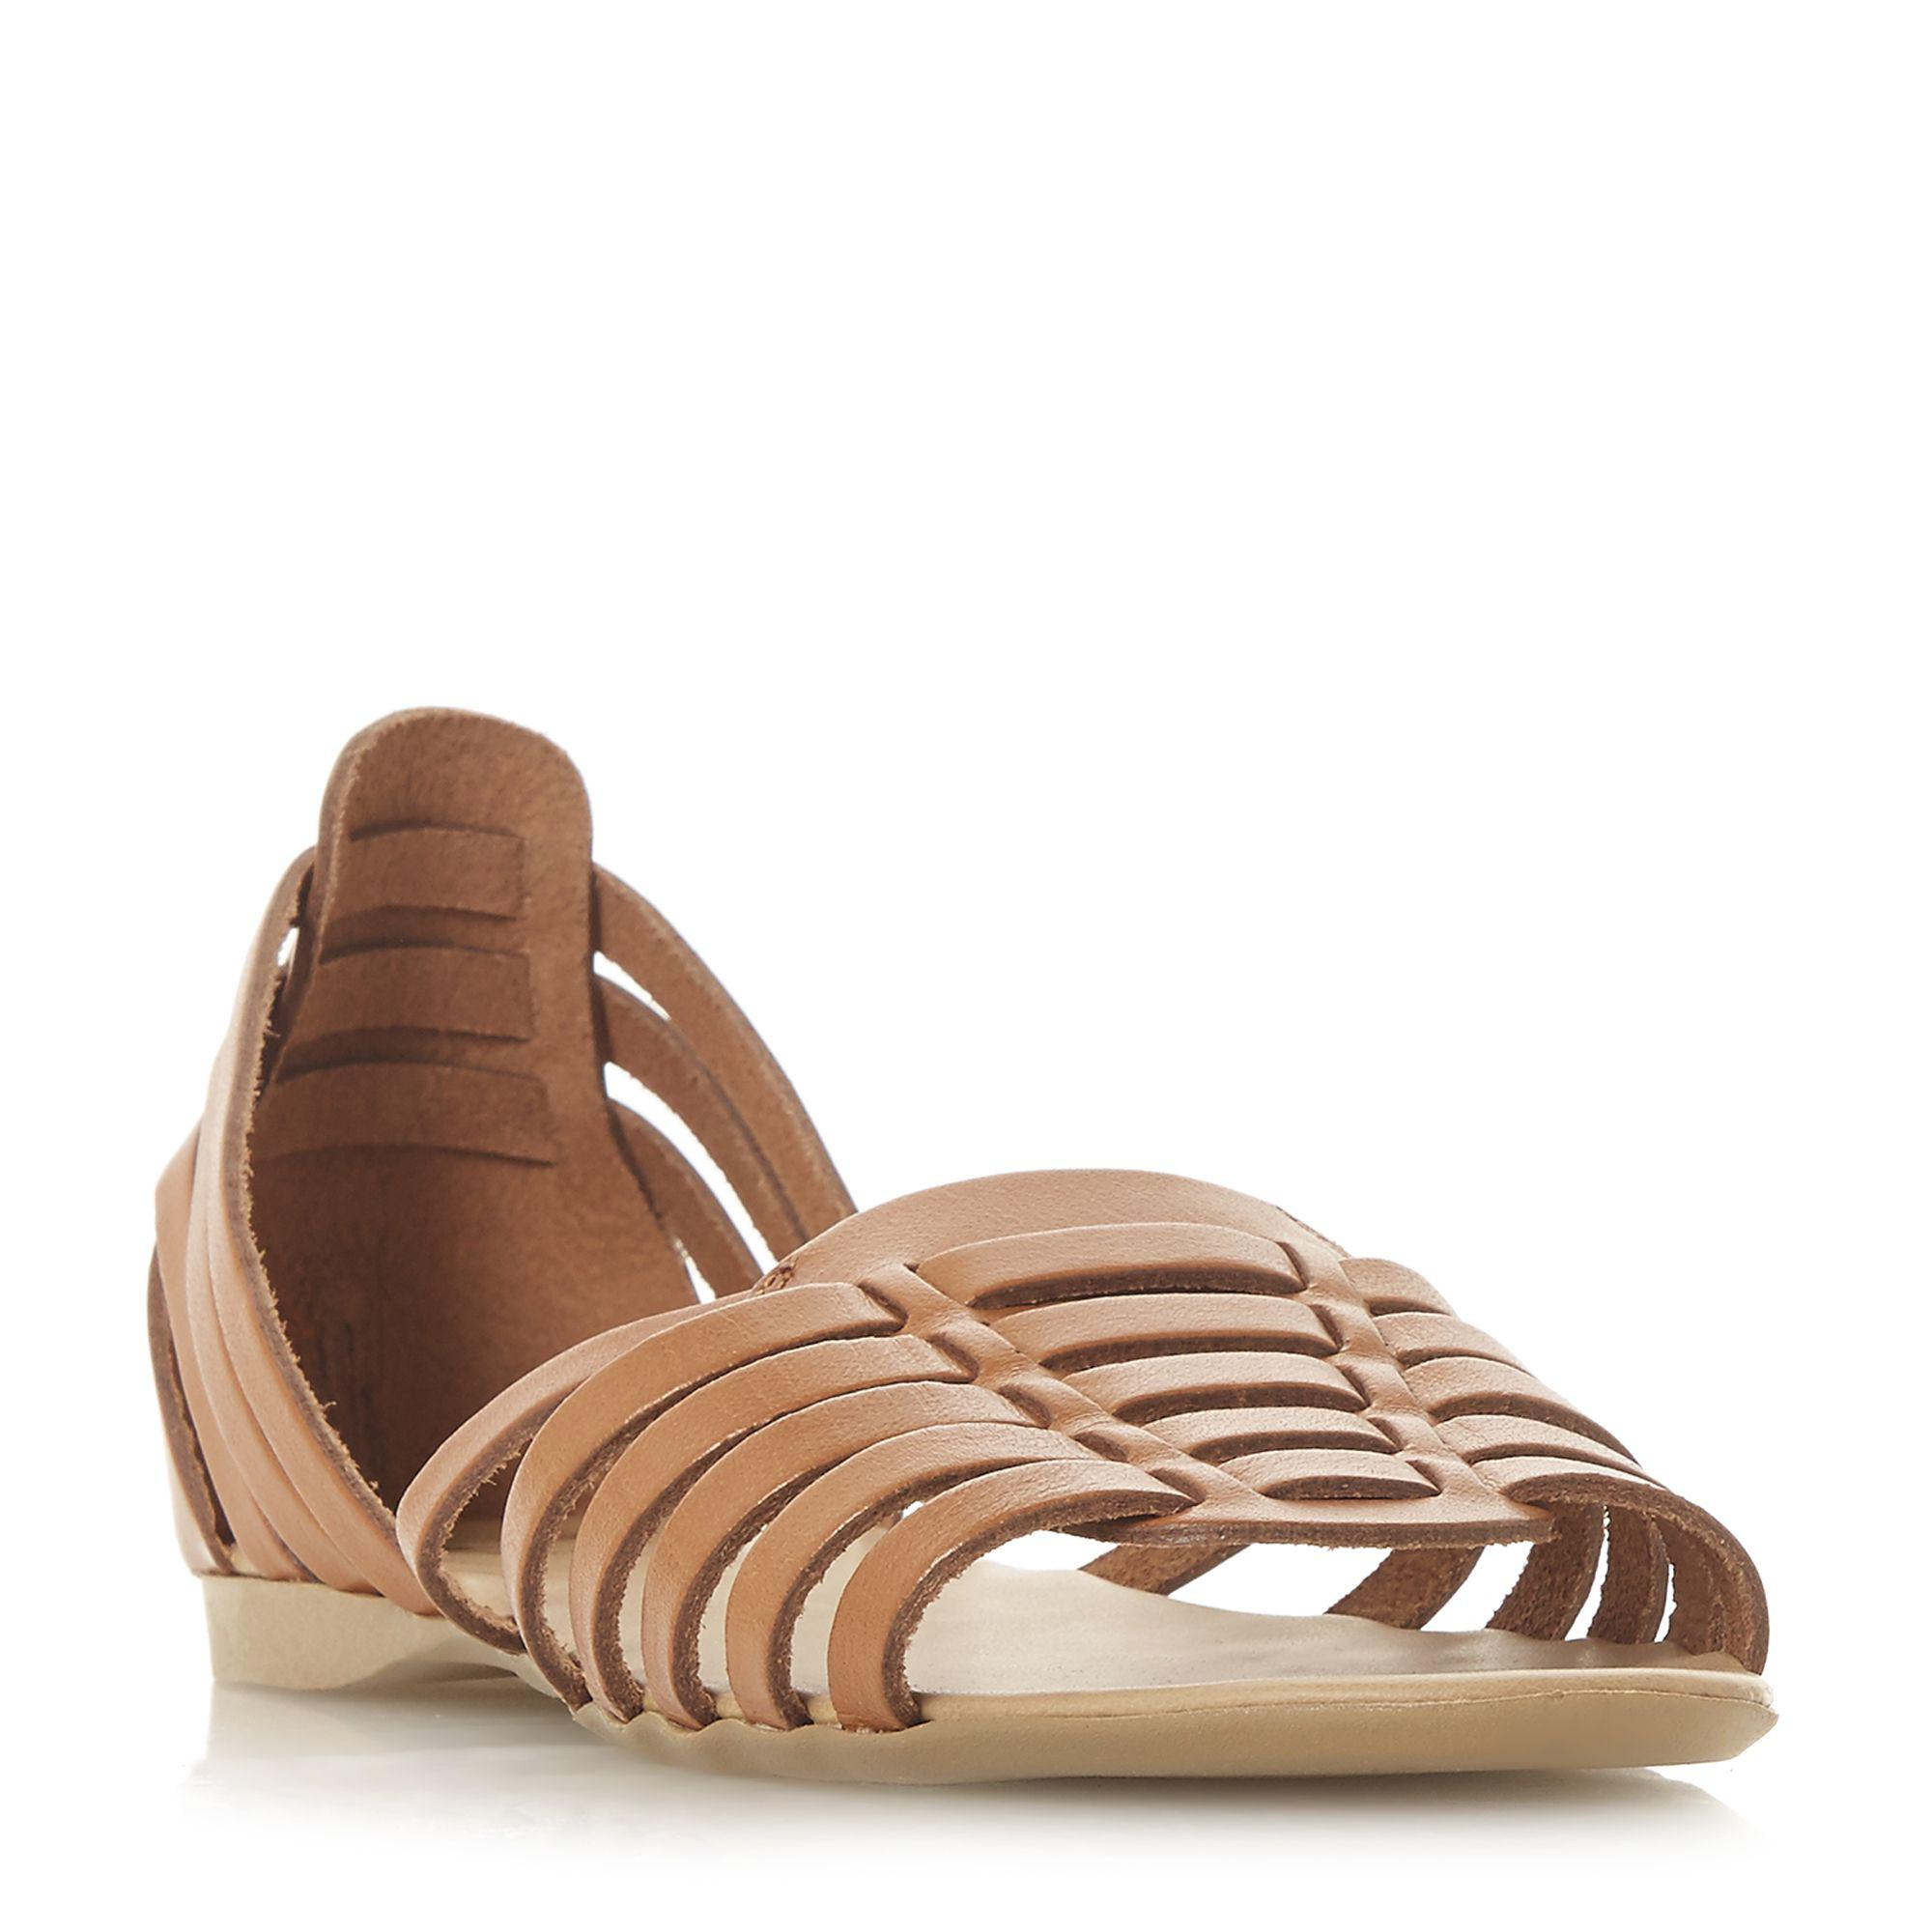 b77c4abd0ae3 Dune Gili Multiple Strap Closed Back Sandals in Brown - Lyst